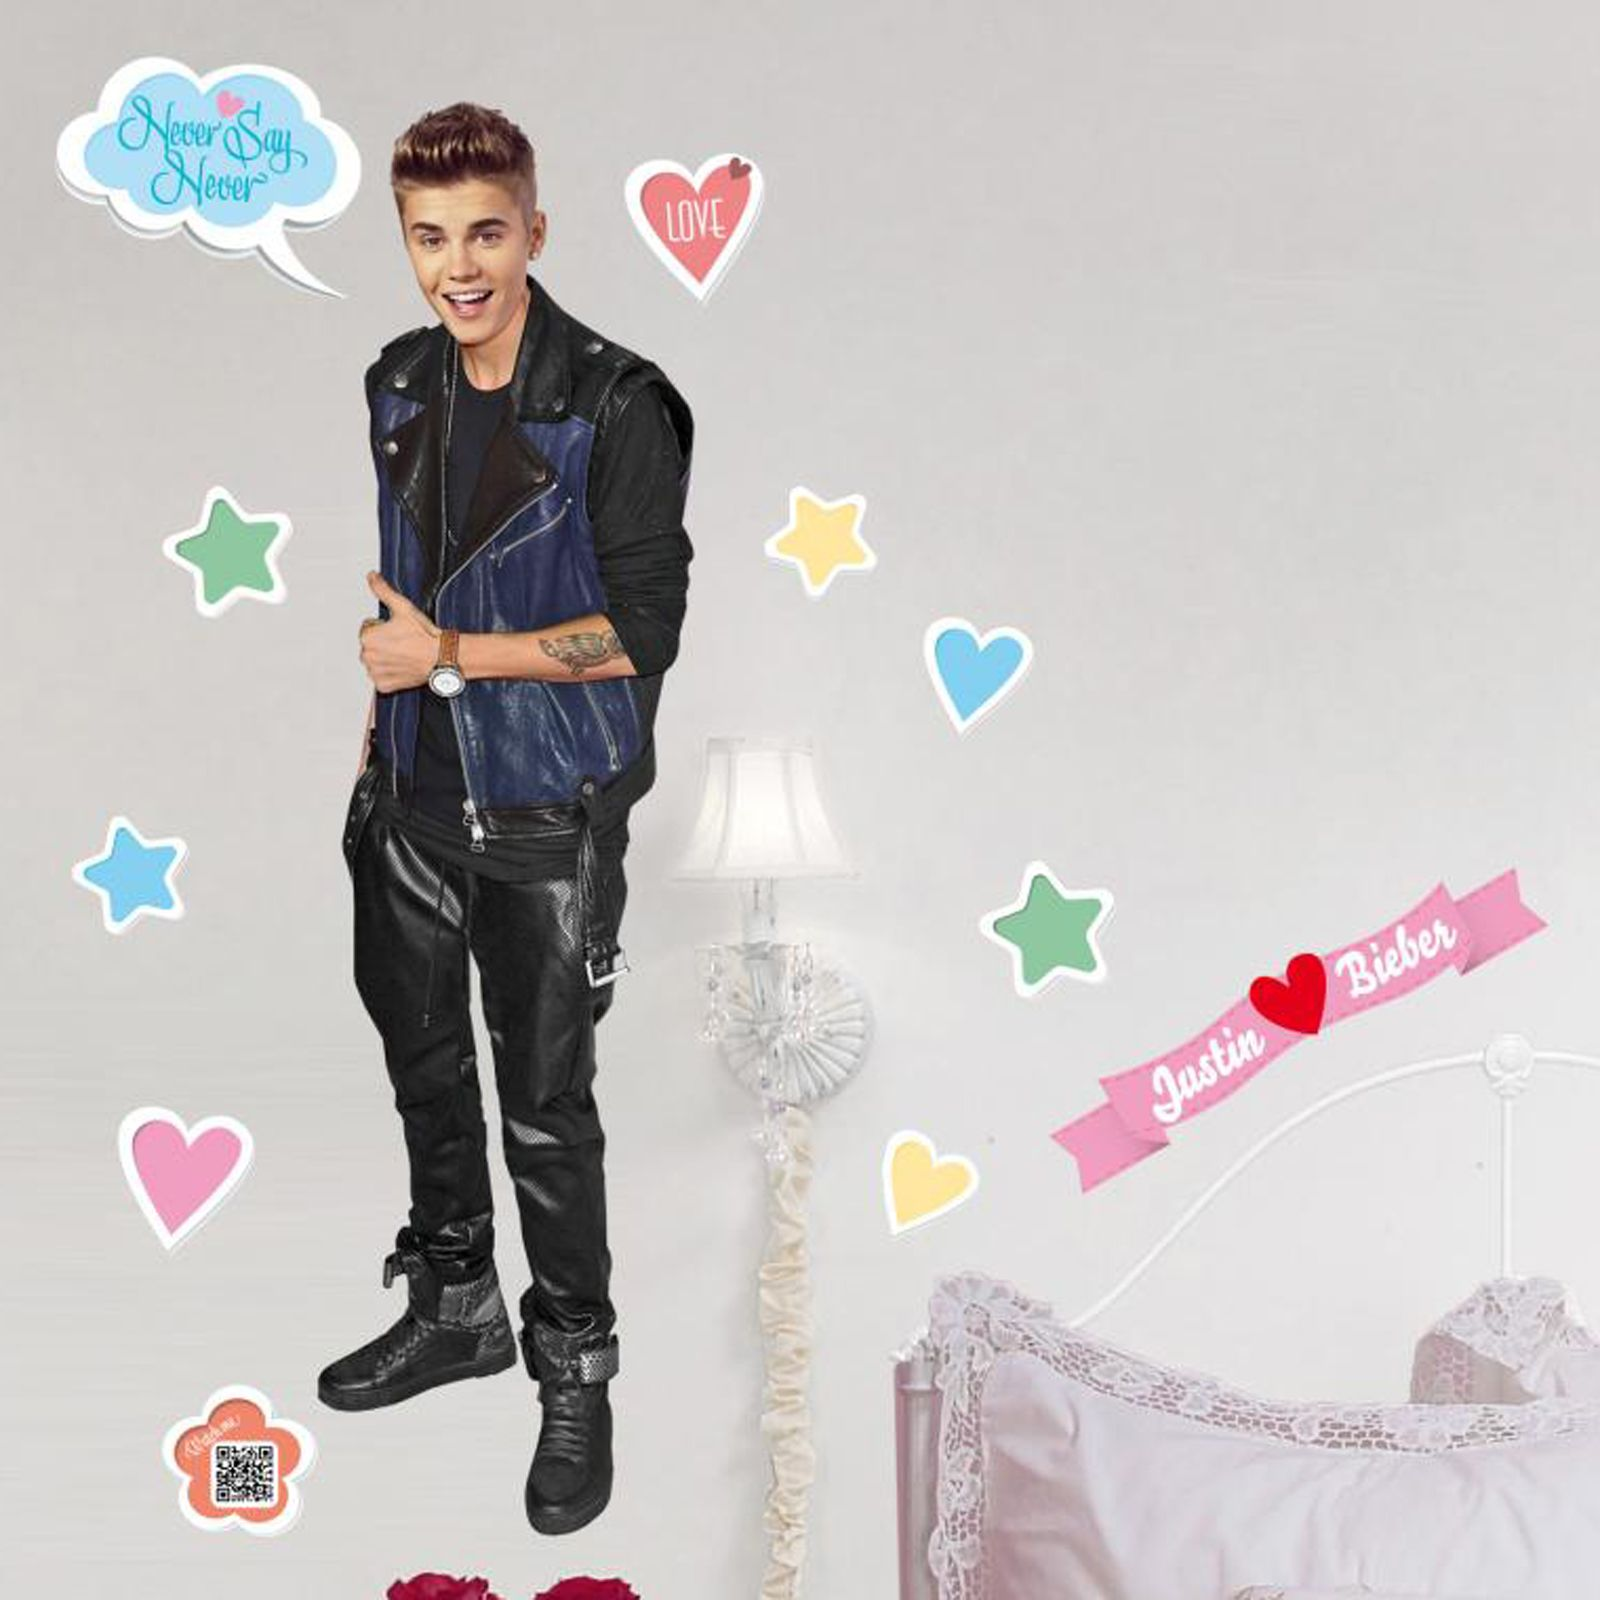 Baby Bedroom Decor Justin Bieber Bedroom Wallpaper Bedroom Design Bed Bedroom Design Modern Classic: JUSTIN BIEBER LARGE WALL STICKERS NEW GIANT ROOM DECOR